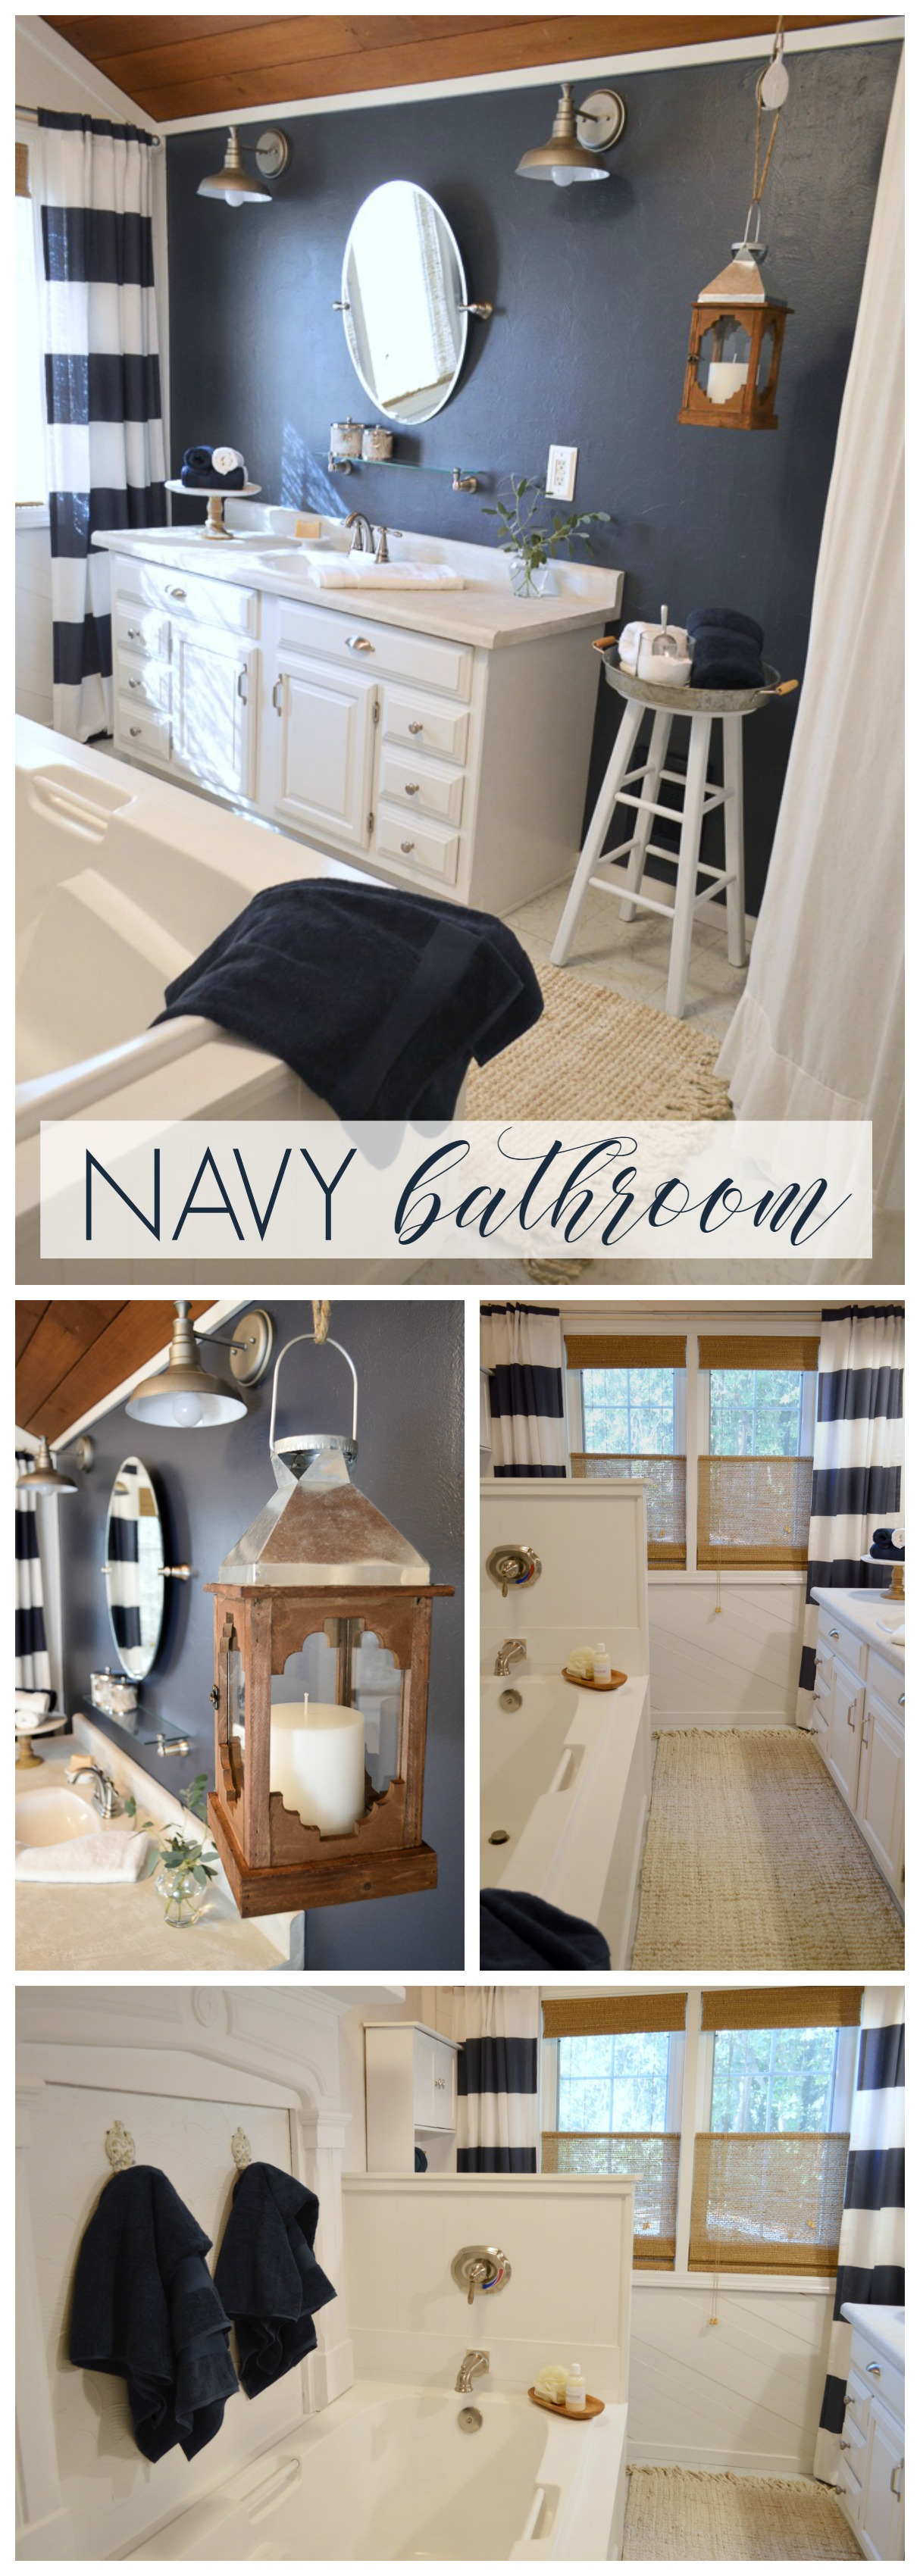 navy-bathroom-makeover-cottage-bath-decorating-ideas